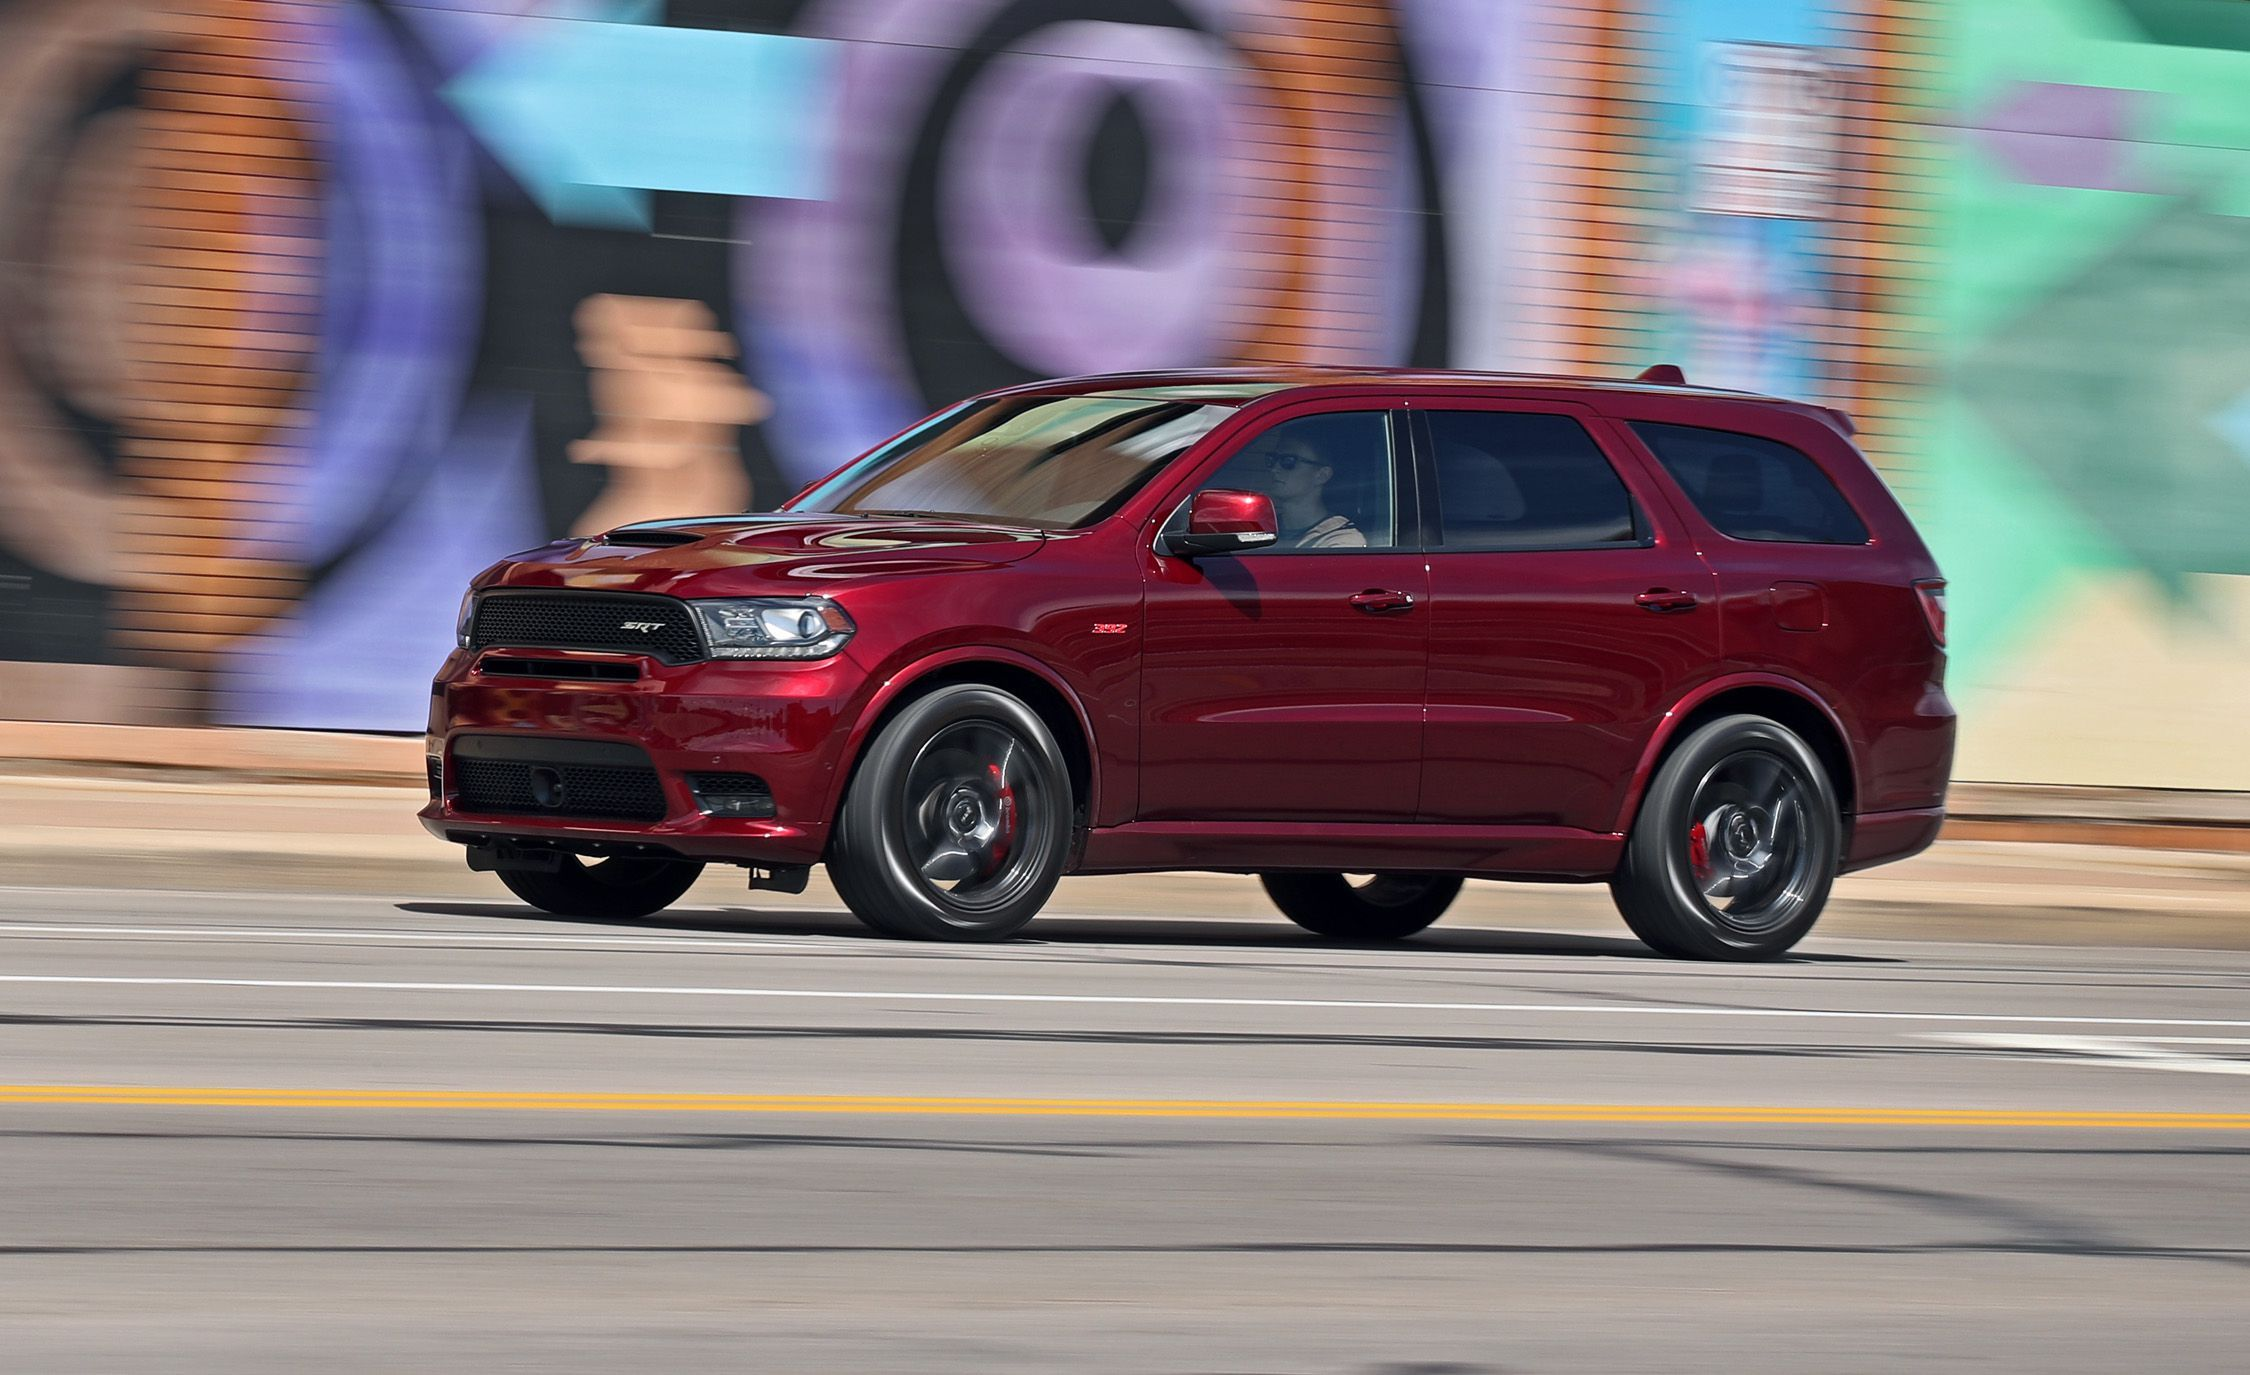 2018 Dodge Durango Srt Tested Third Row With Power